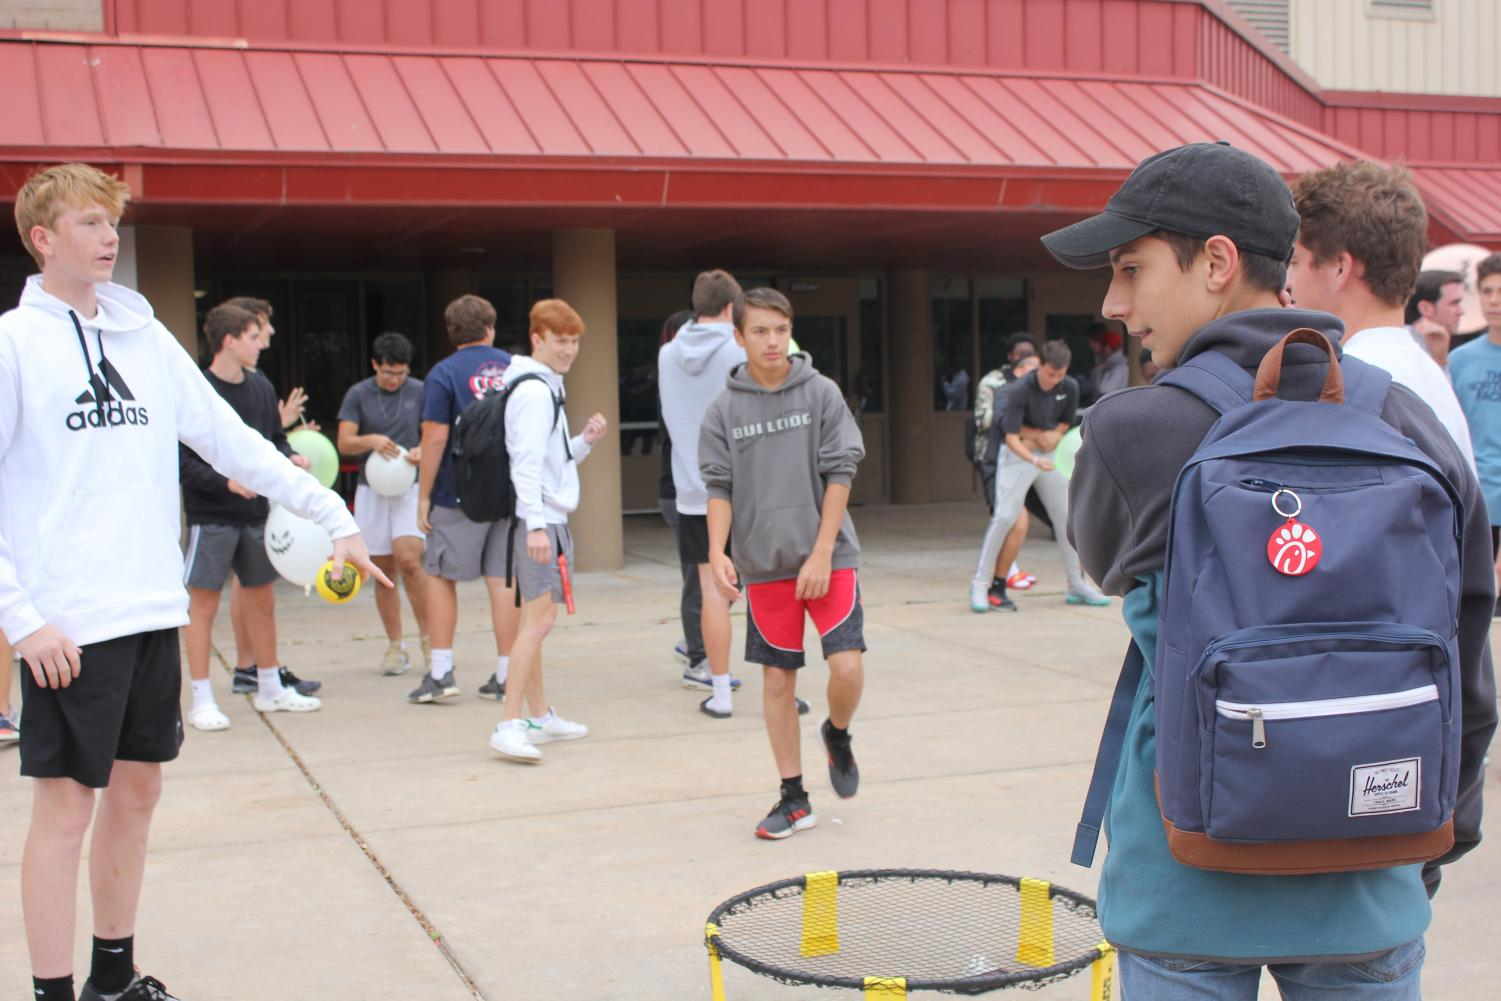 Sophomore+Matthew+O%27Leary+plays+spikeball+with+his+classmates+during+the+festival.+Students+of+all+different+grades+mingle+in+the+courtyard+all+fighting+for+the+goal+of+making+a+strong+community.